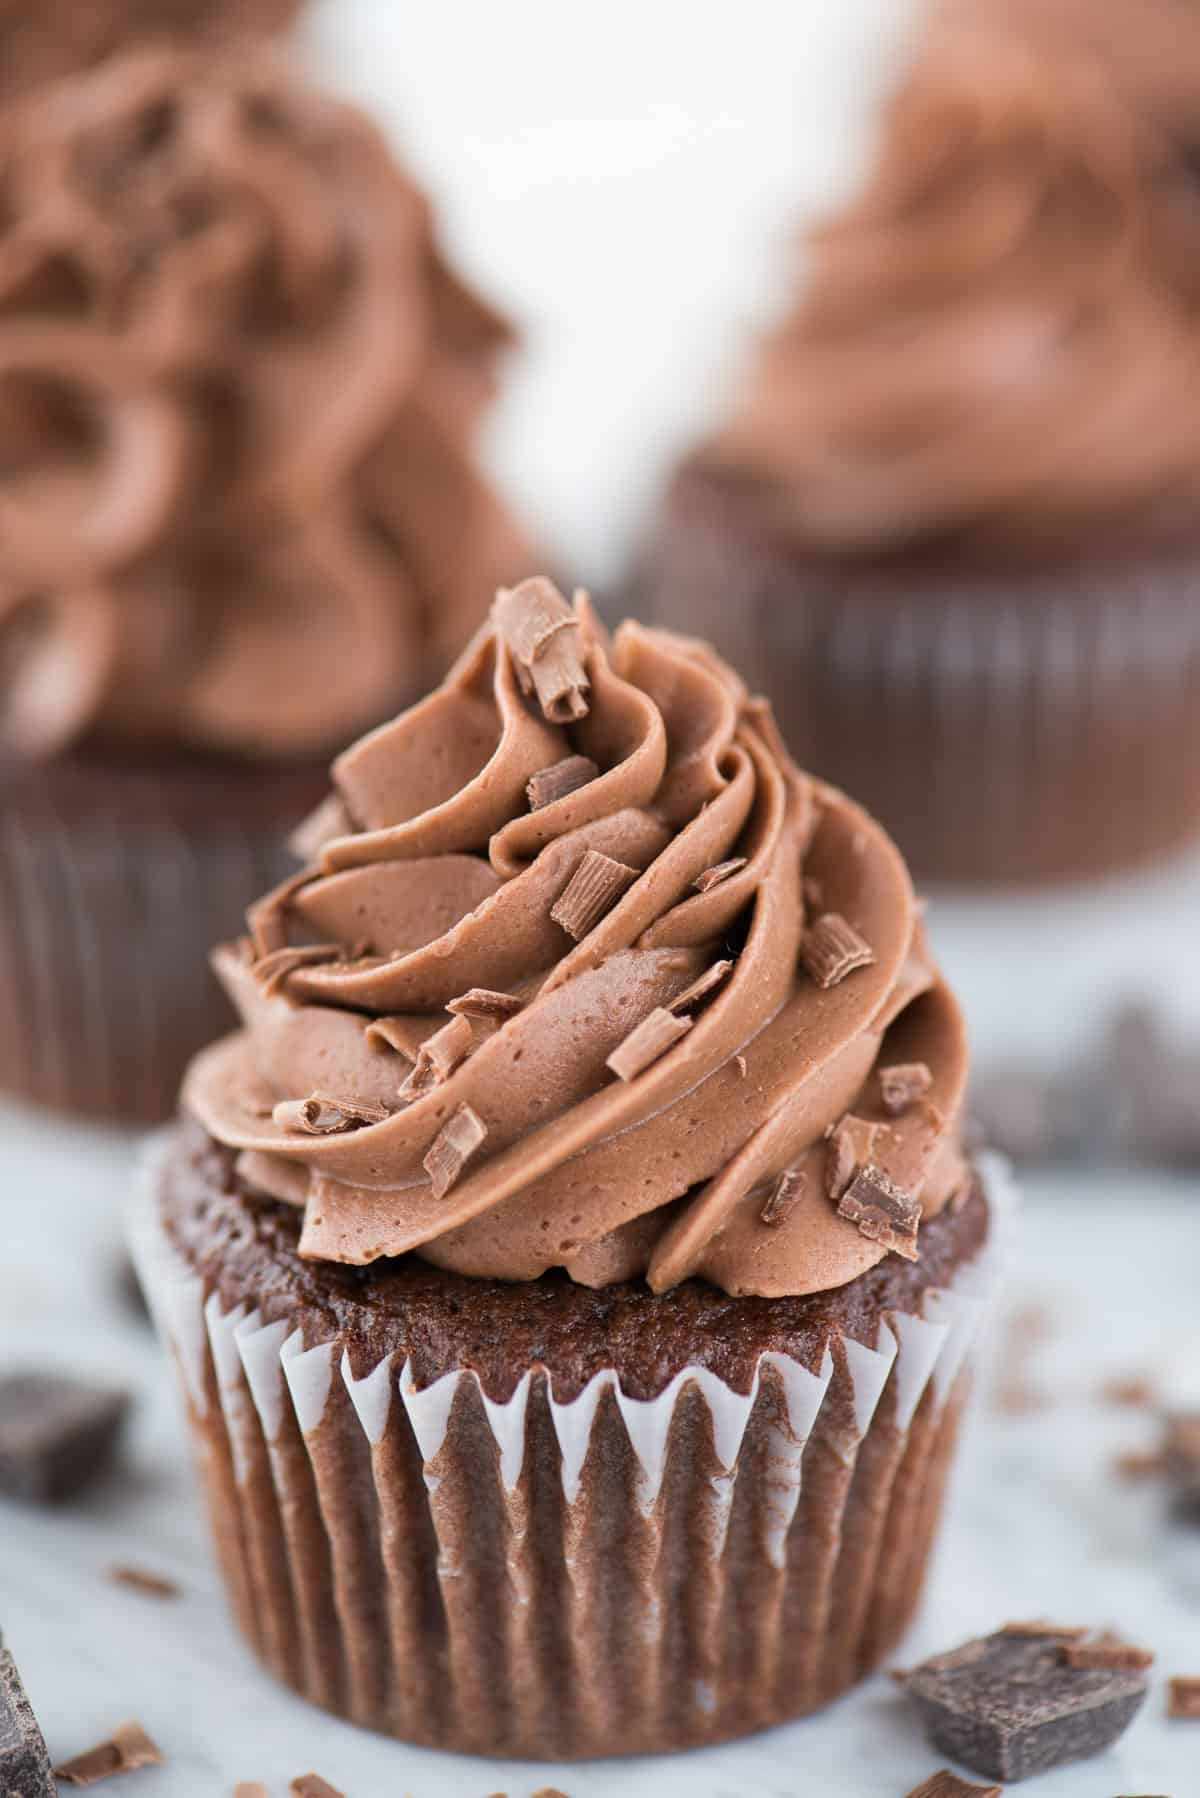 chocolate cupcake with chocolate frosting on white background